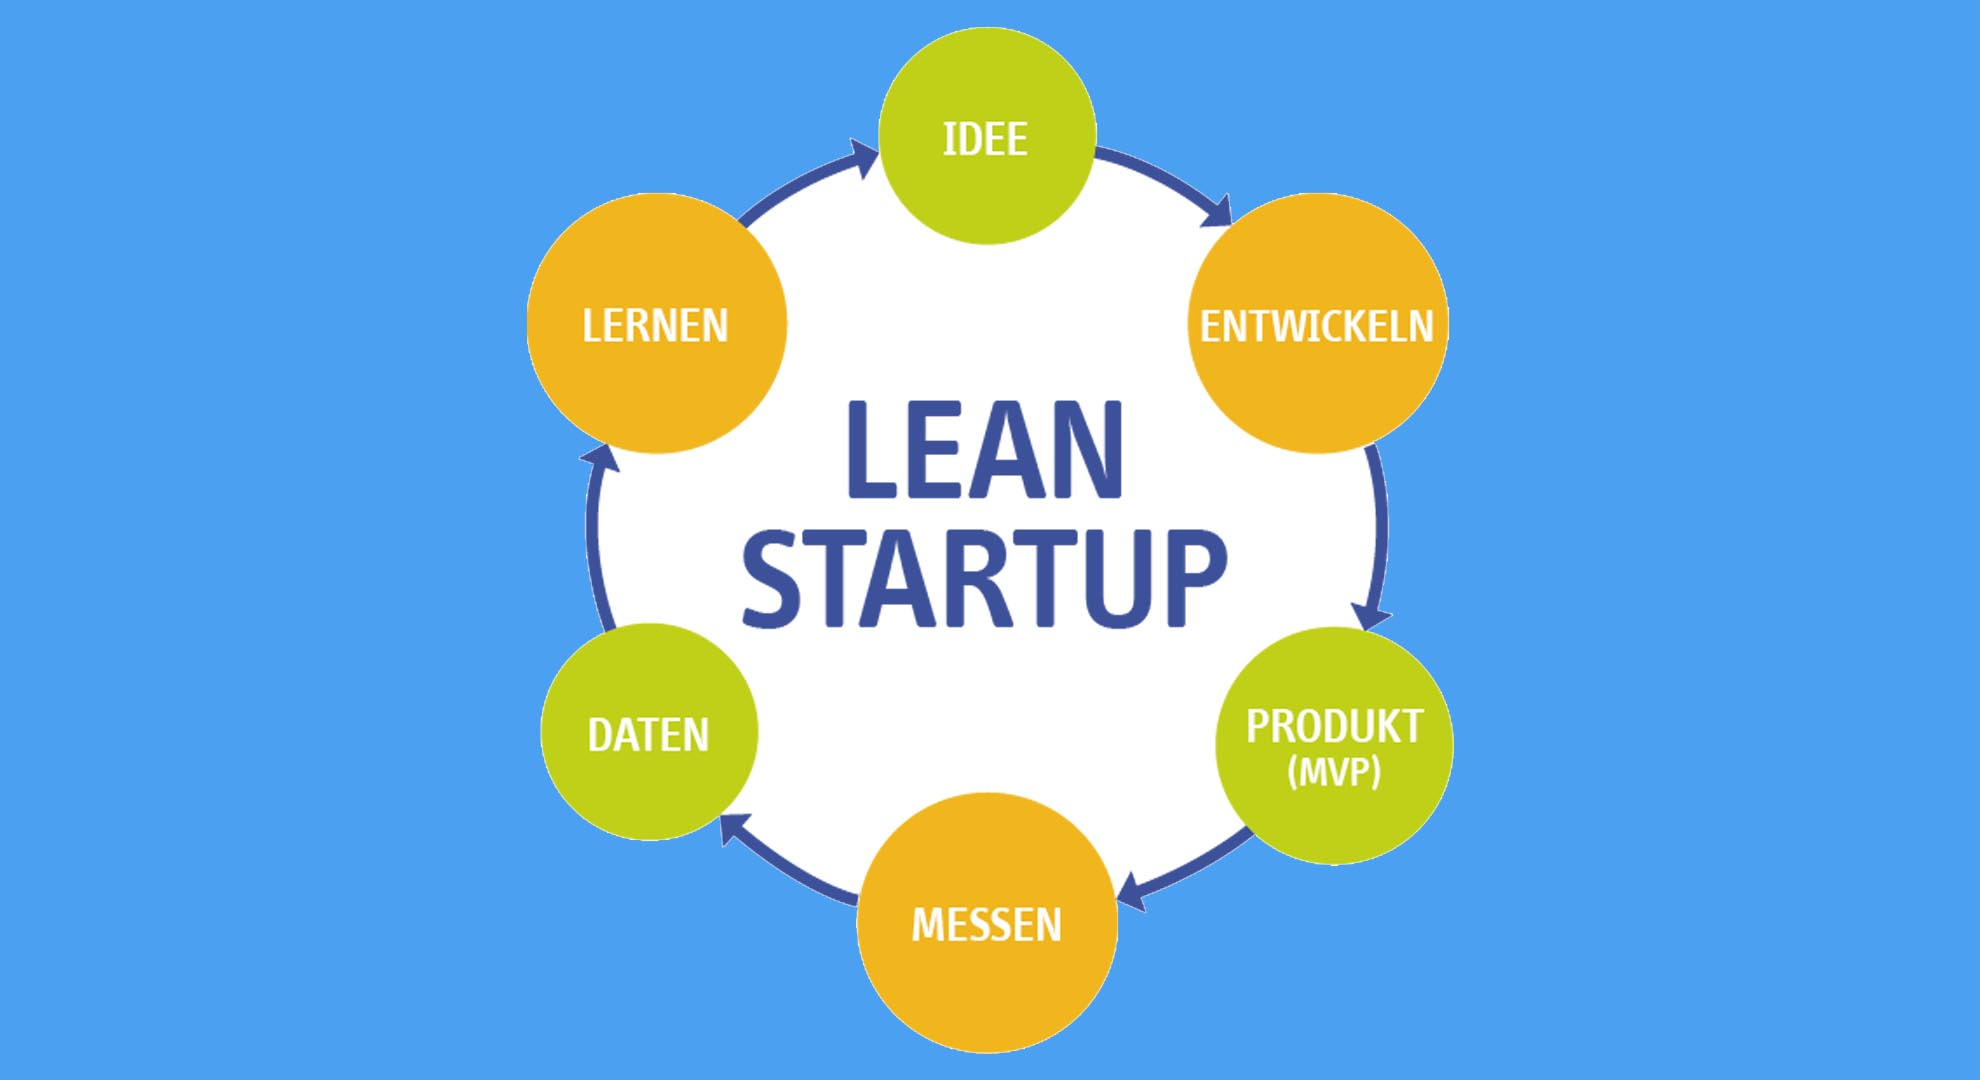 Lean startup dating site